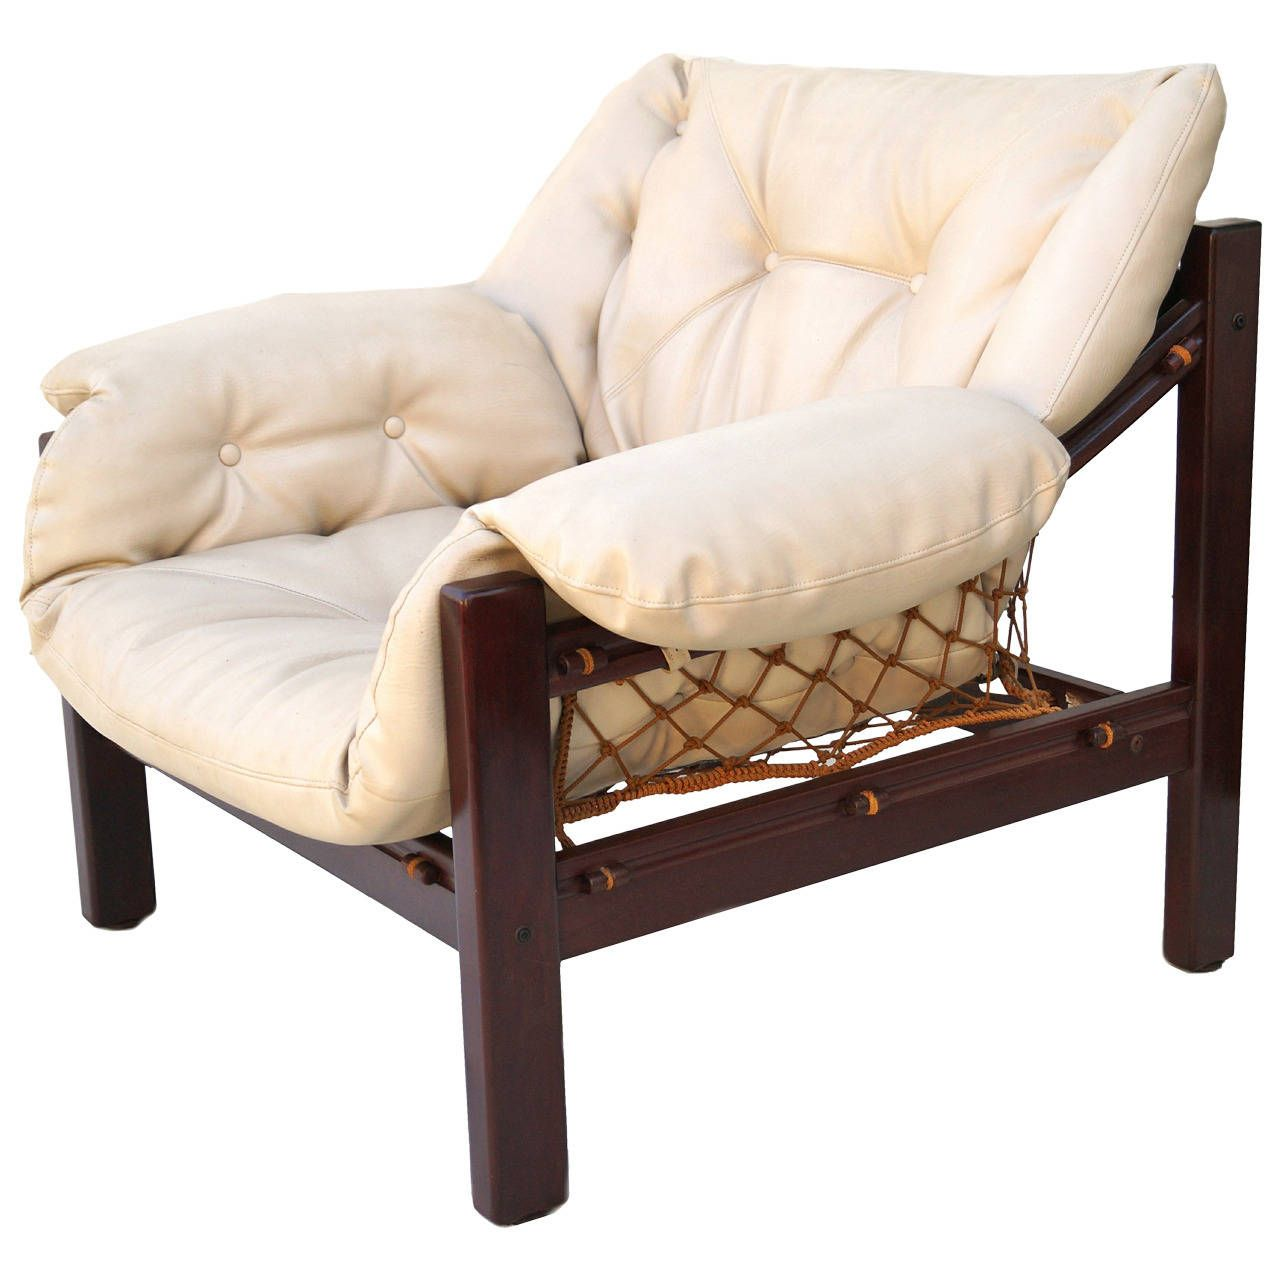 Antique lounge chairs - Jean Gillon Leather Sling Lounge Chair